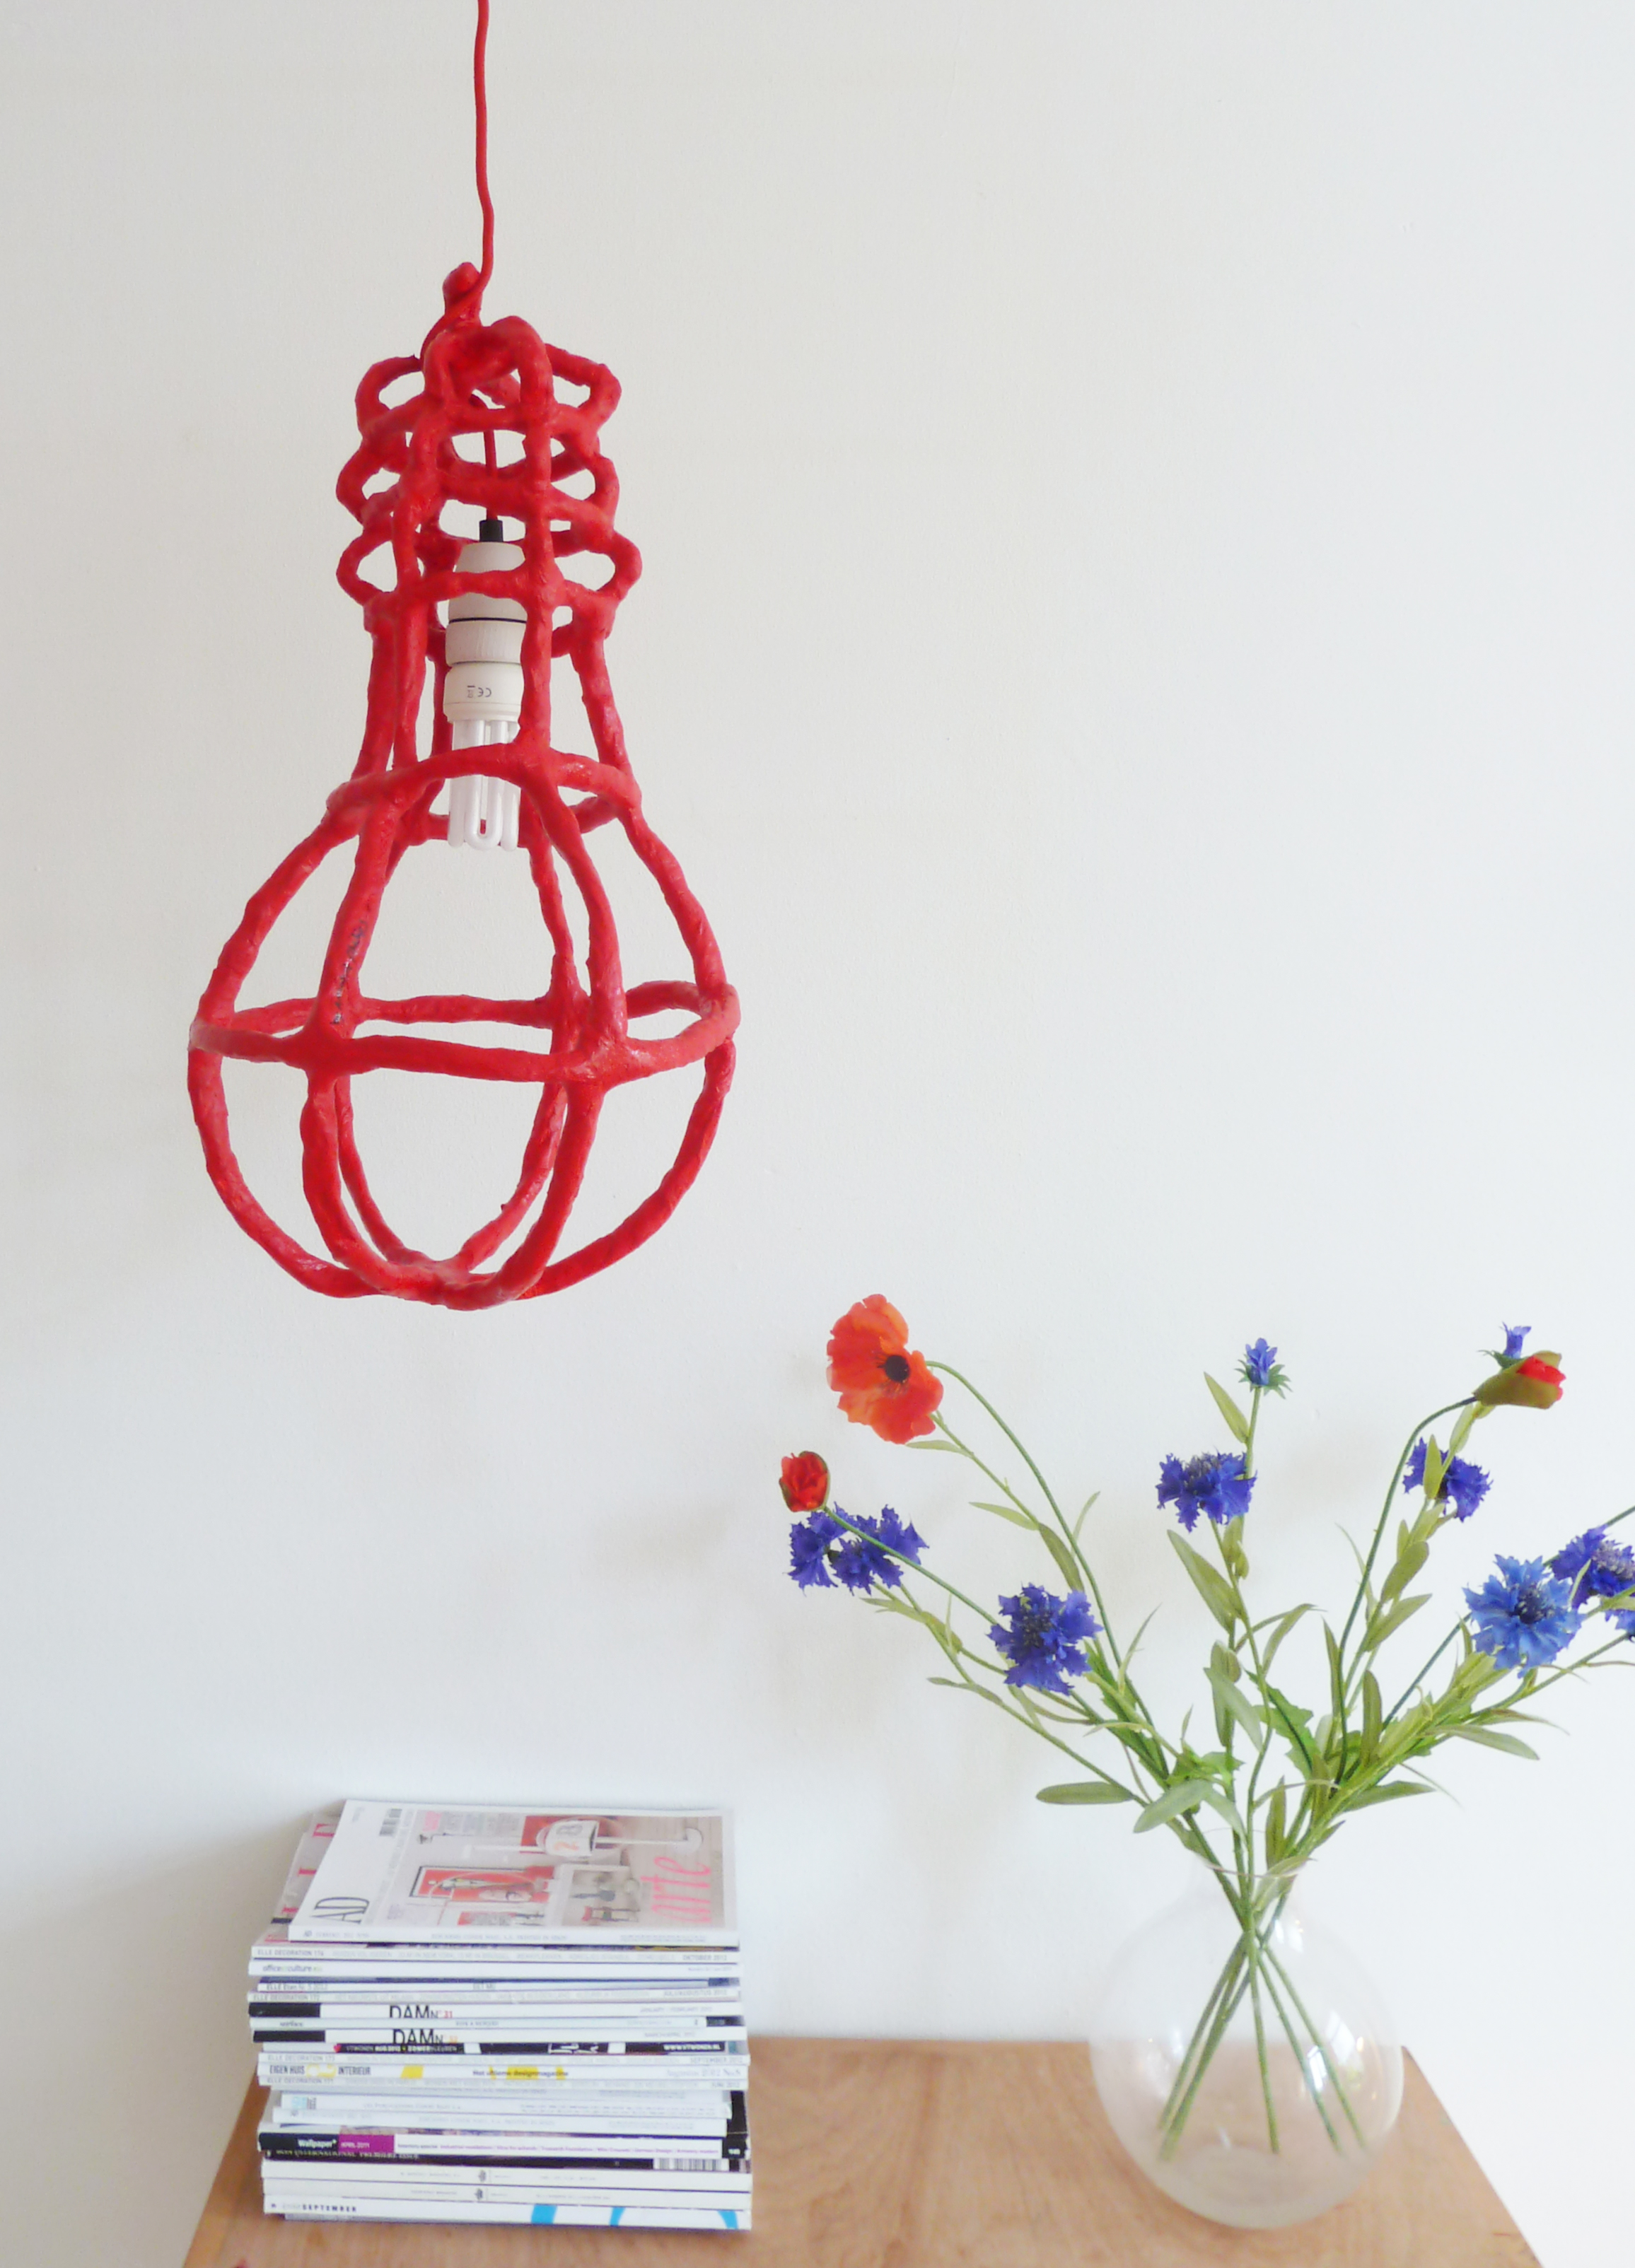 Beautiful Bulb - red saving light image 1.jpg